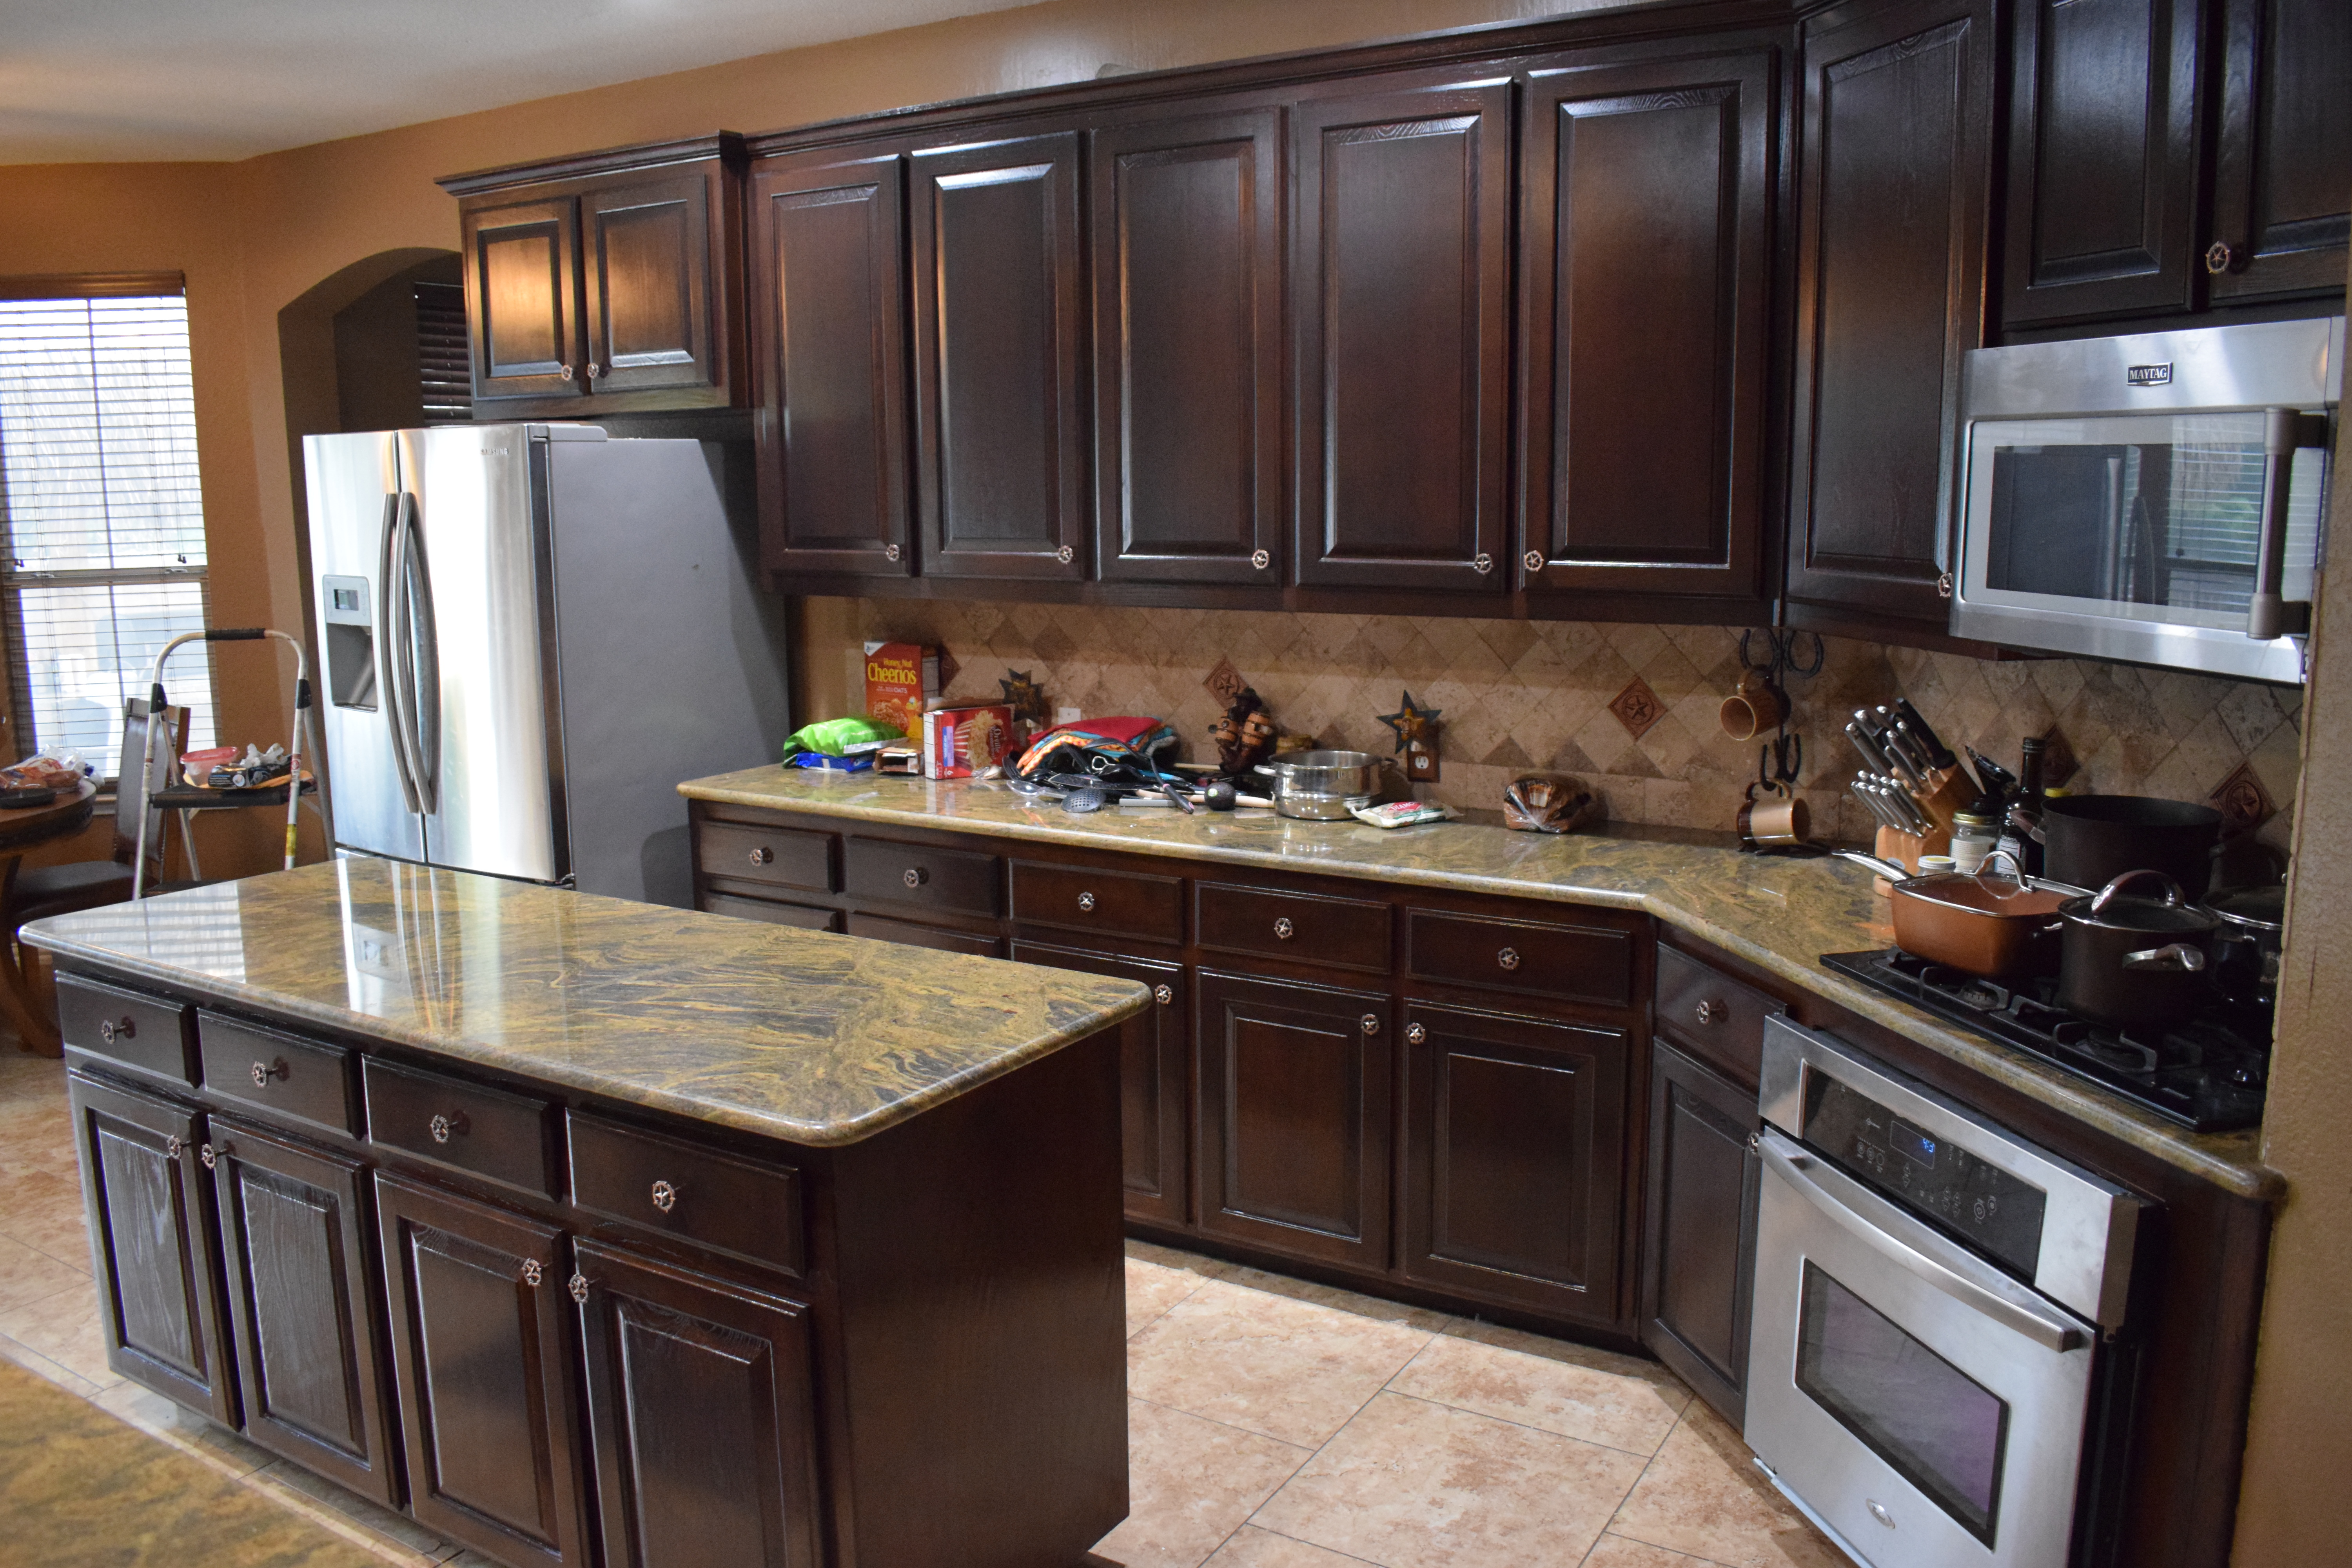 We can change the color of your cabinets without sanding them down to bare wood and without toxic strippers! & gleam guard u2013 REFINISHING